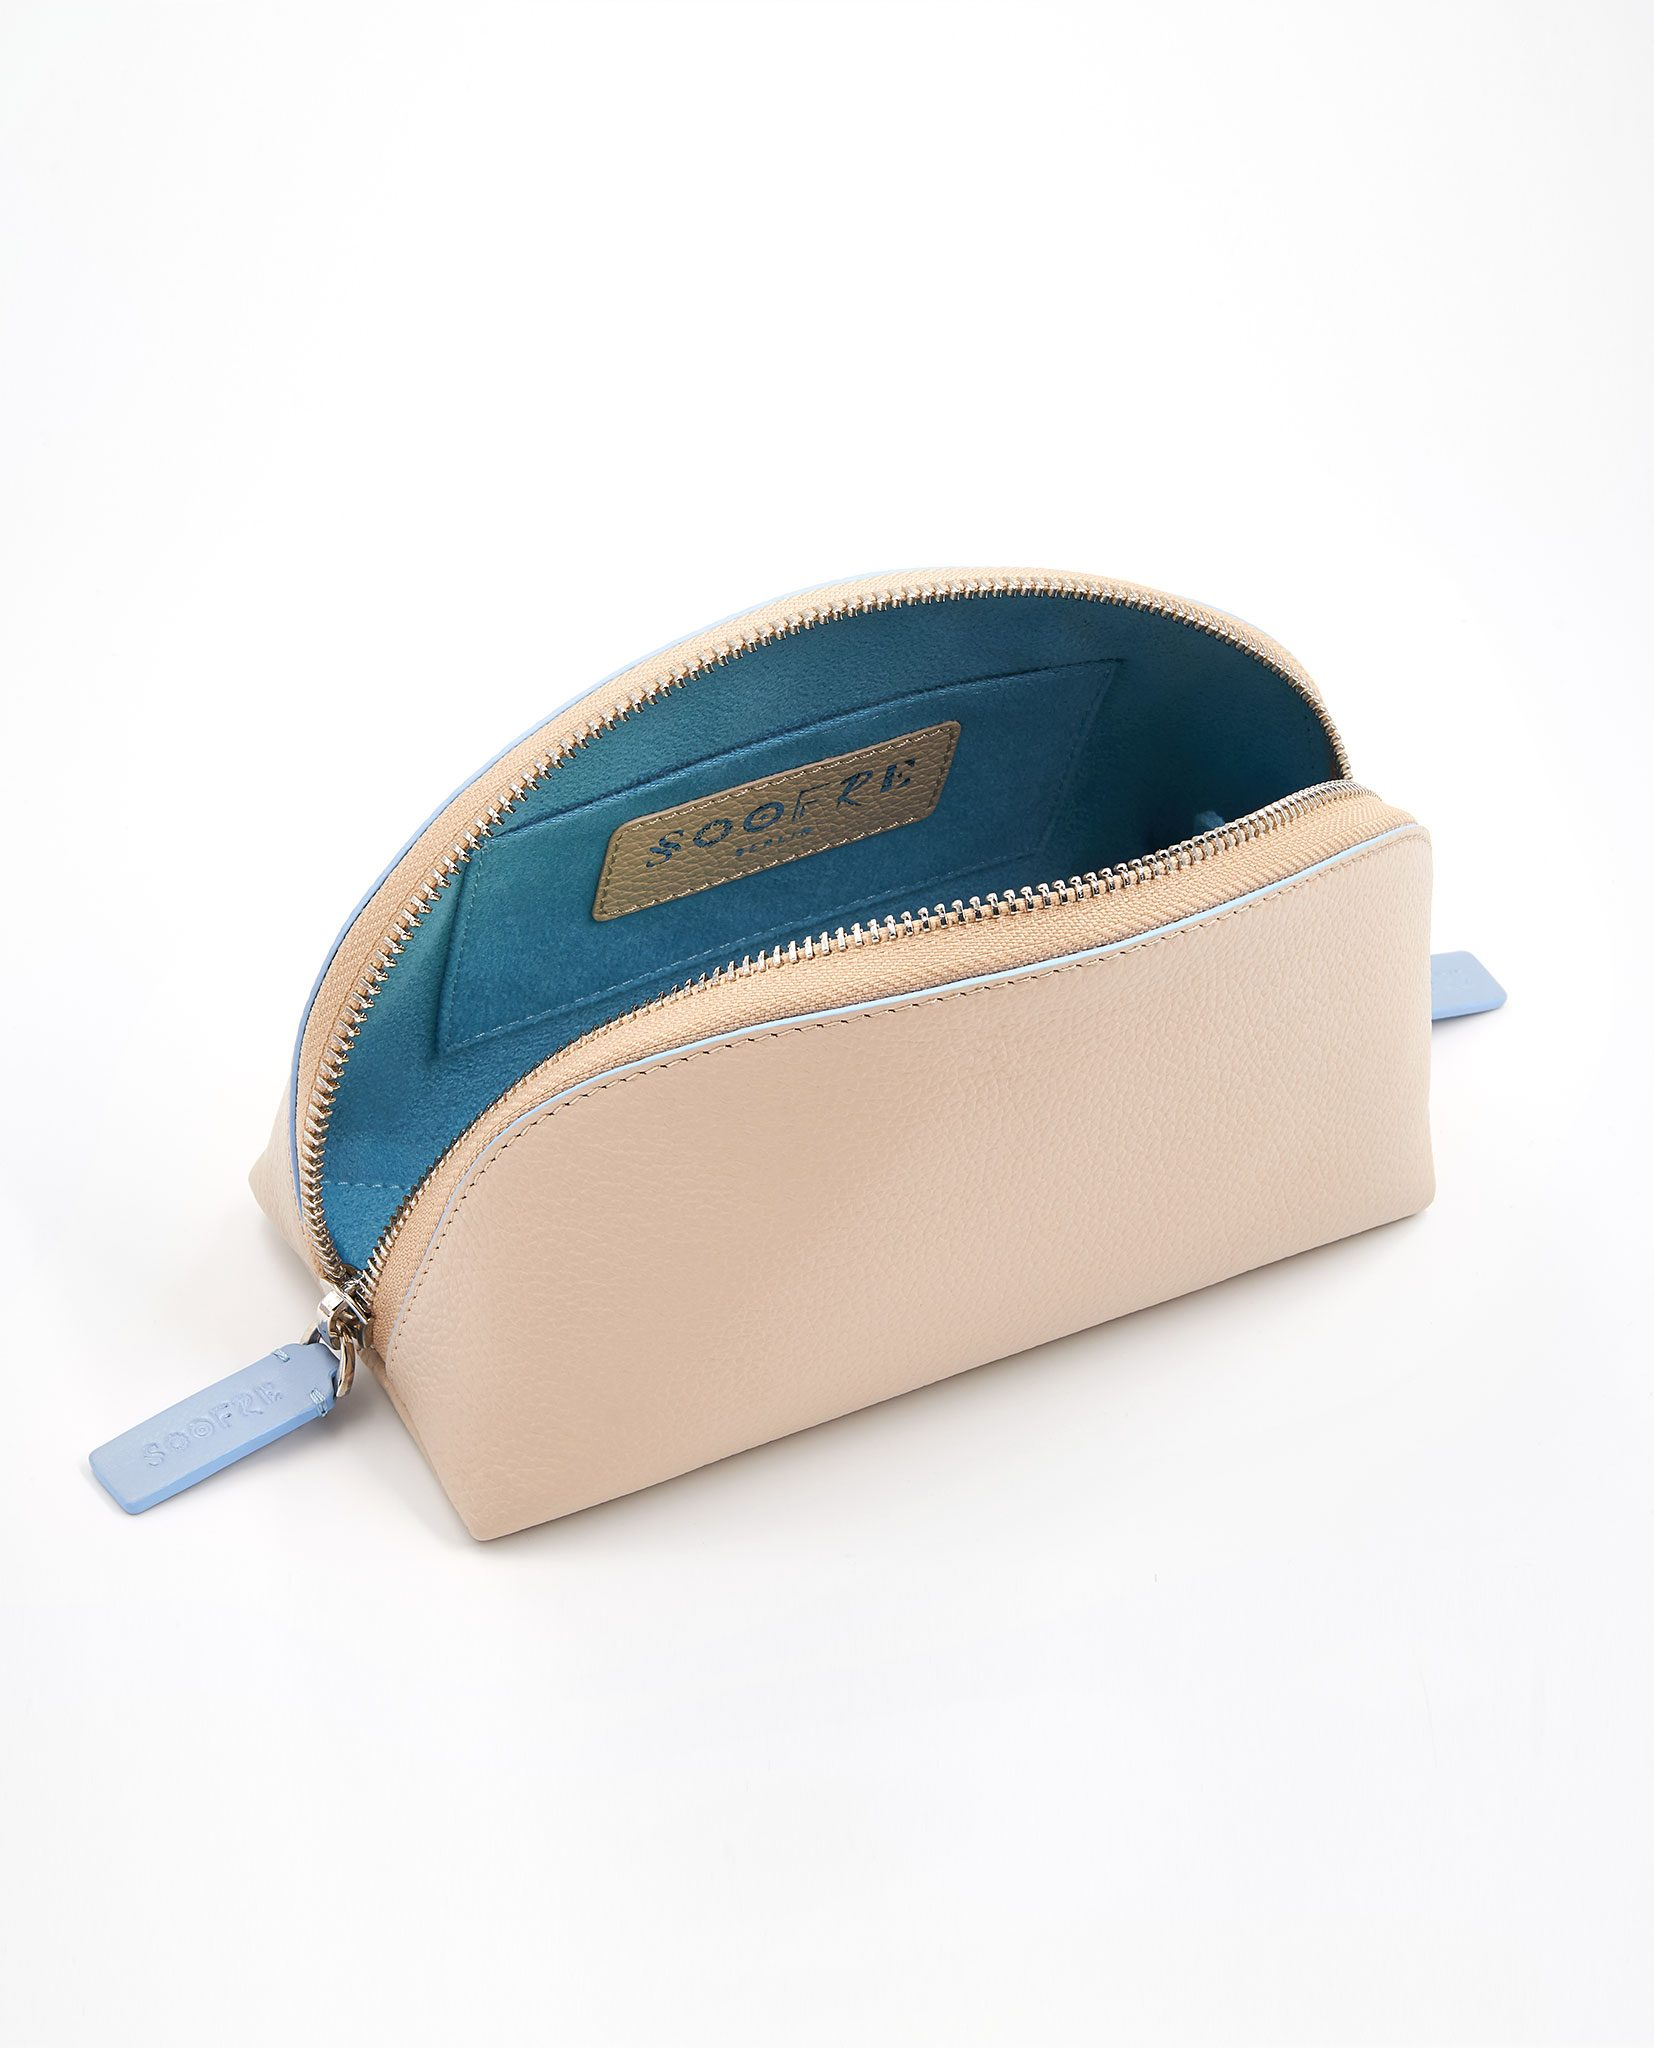 Soofre_Cosmetic-Bag-Cream-Pale-Blue_2